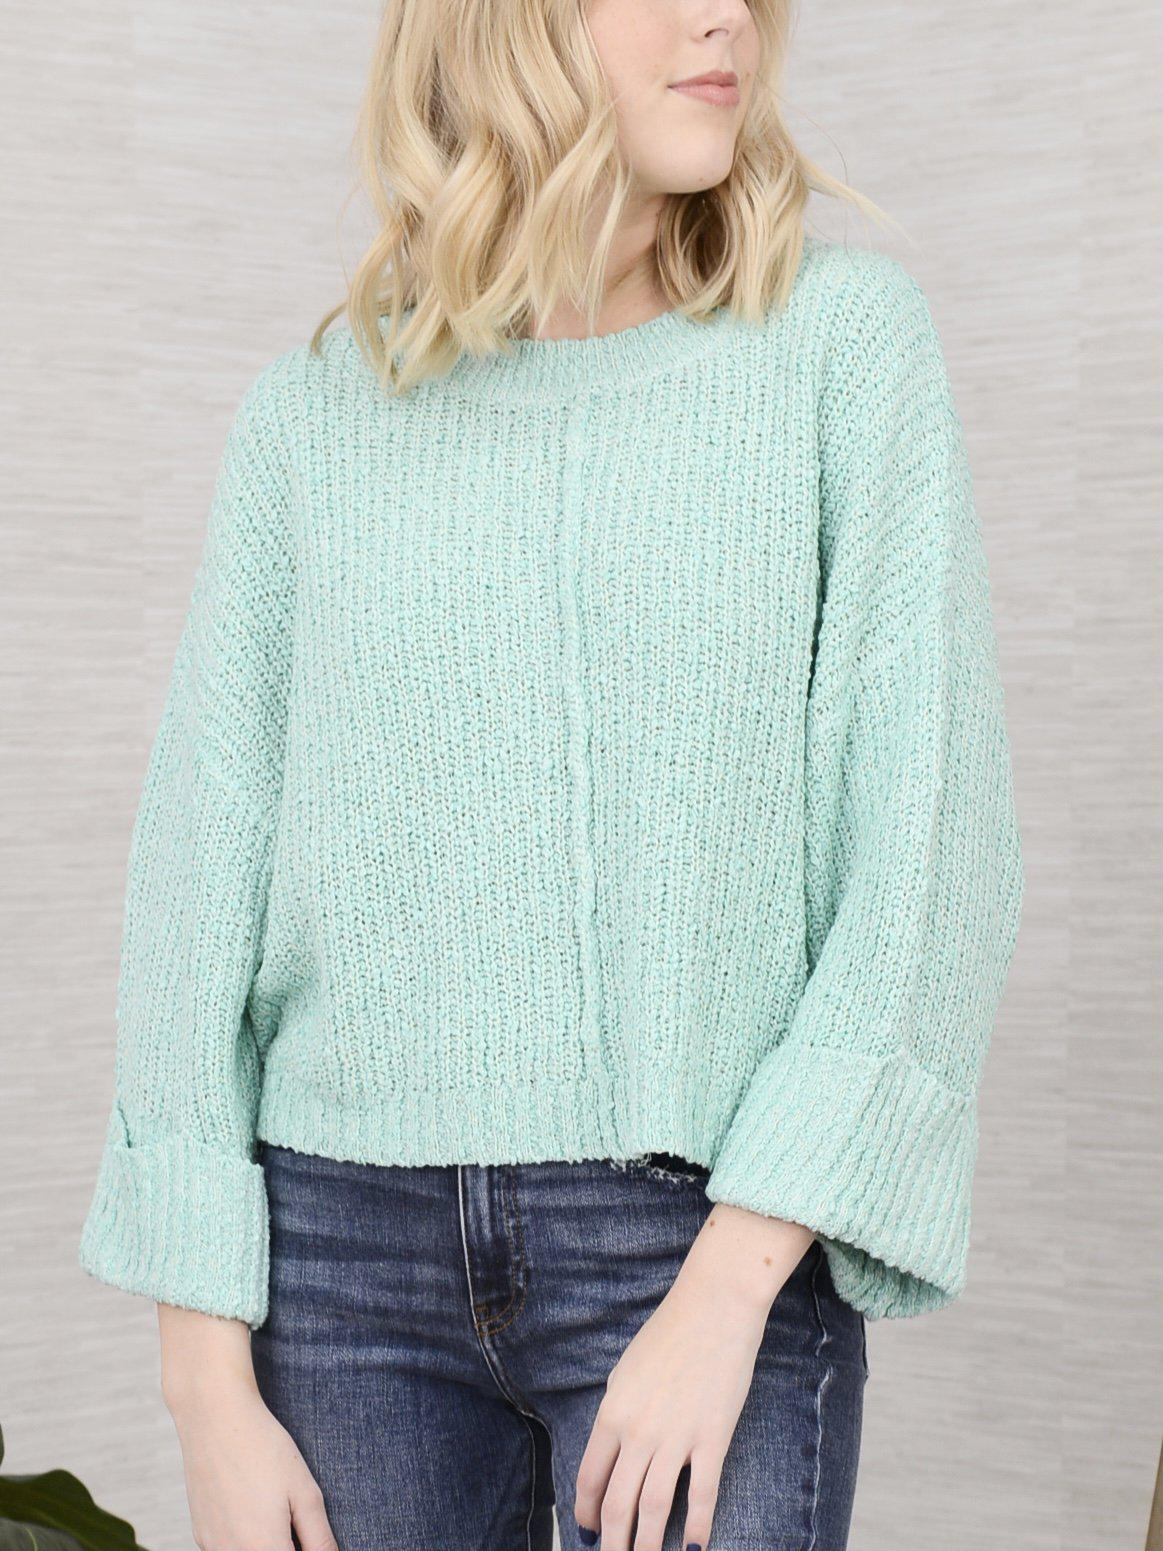 Ribbed and Ready Sweater-Women's -New Arrivals-Runway Seven